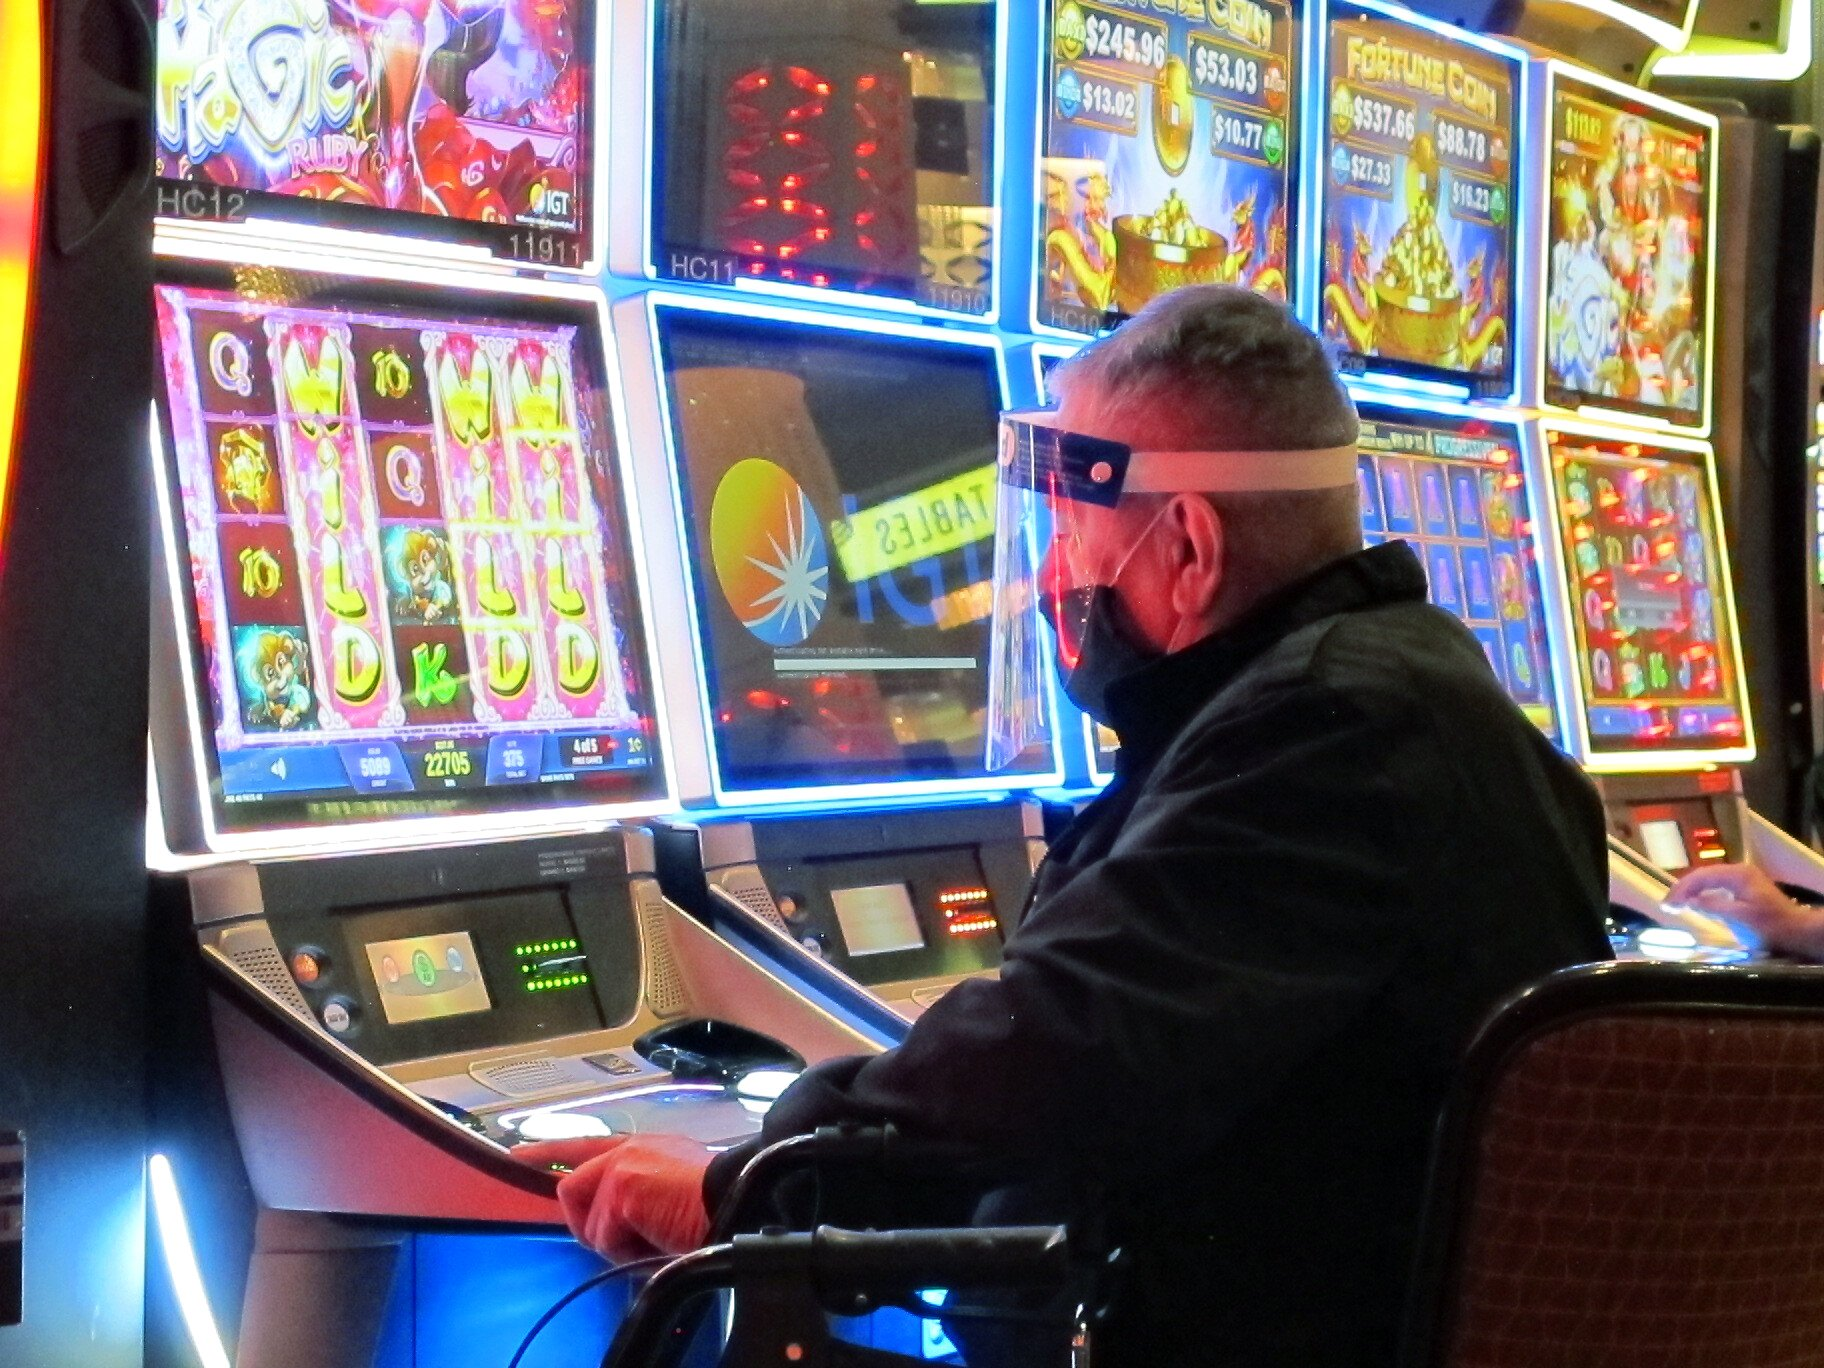 US casinos recovering from virus, but challenges remain